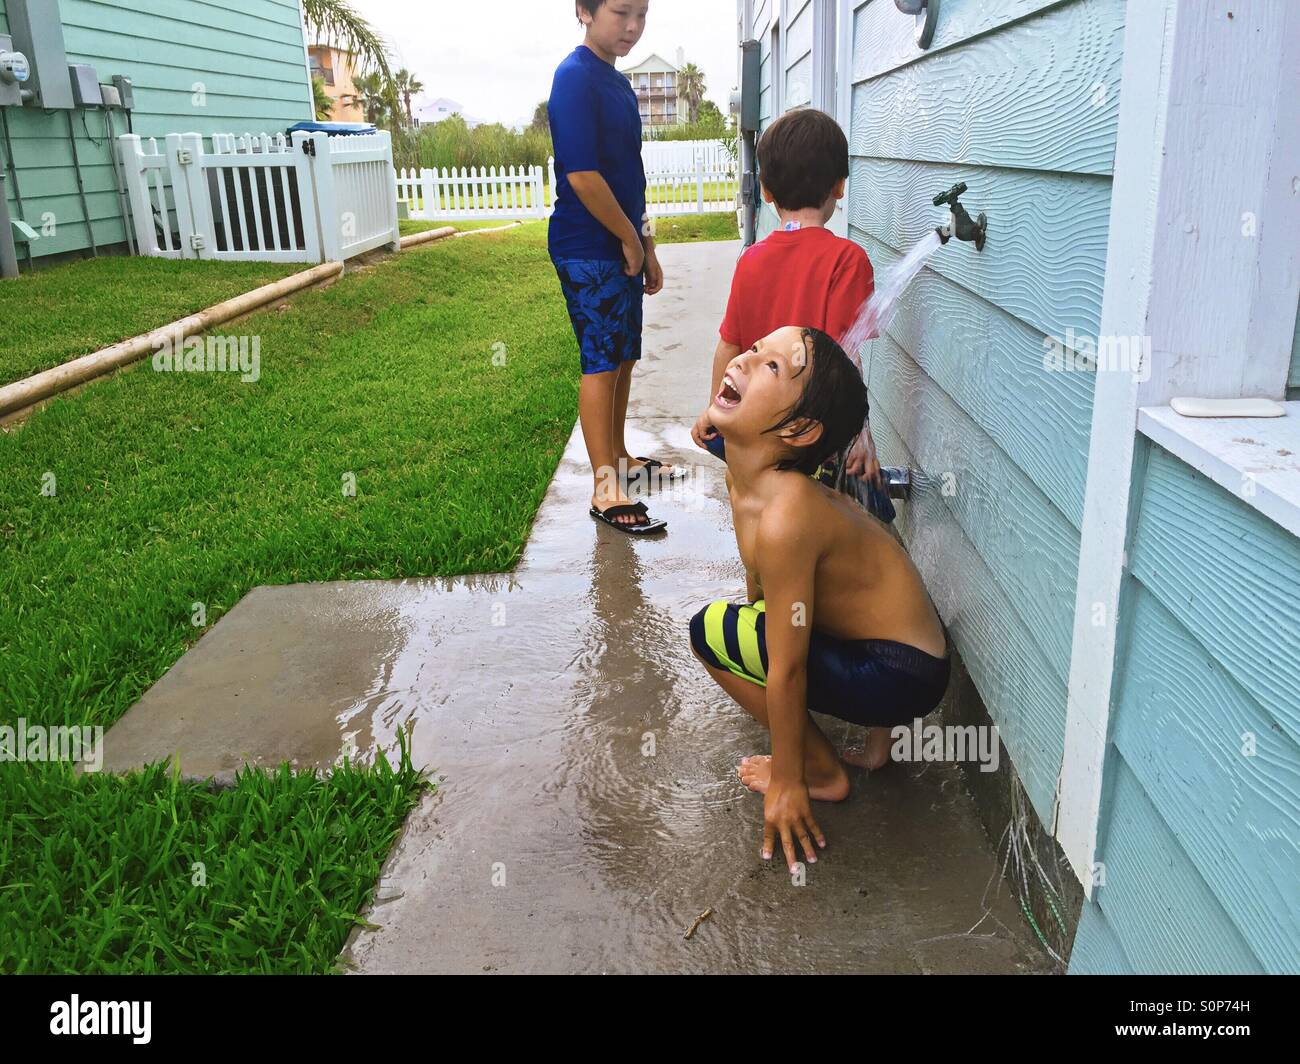 Boys rinsing off after swimming. Playing in water.Stock Photo